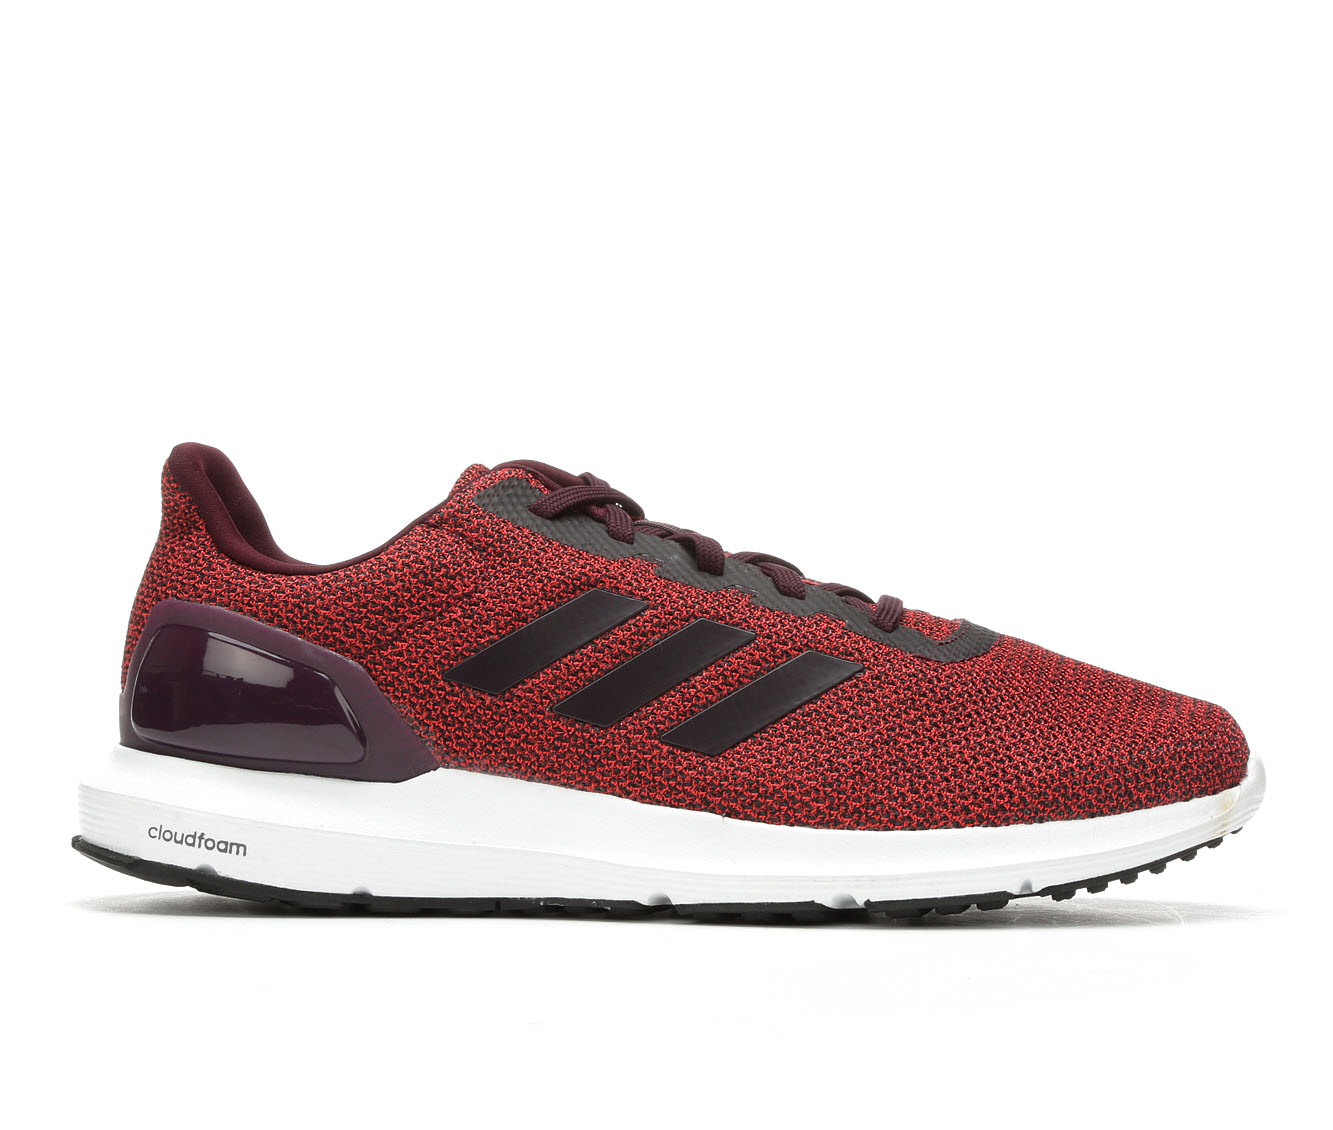 Men's Adidas Cosmic 2 SL Running Shoes (Red - Size 6.5) 1669395